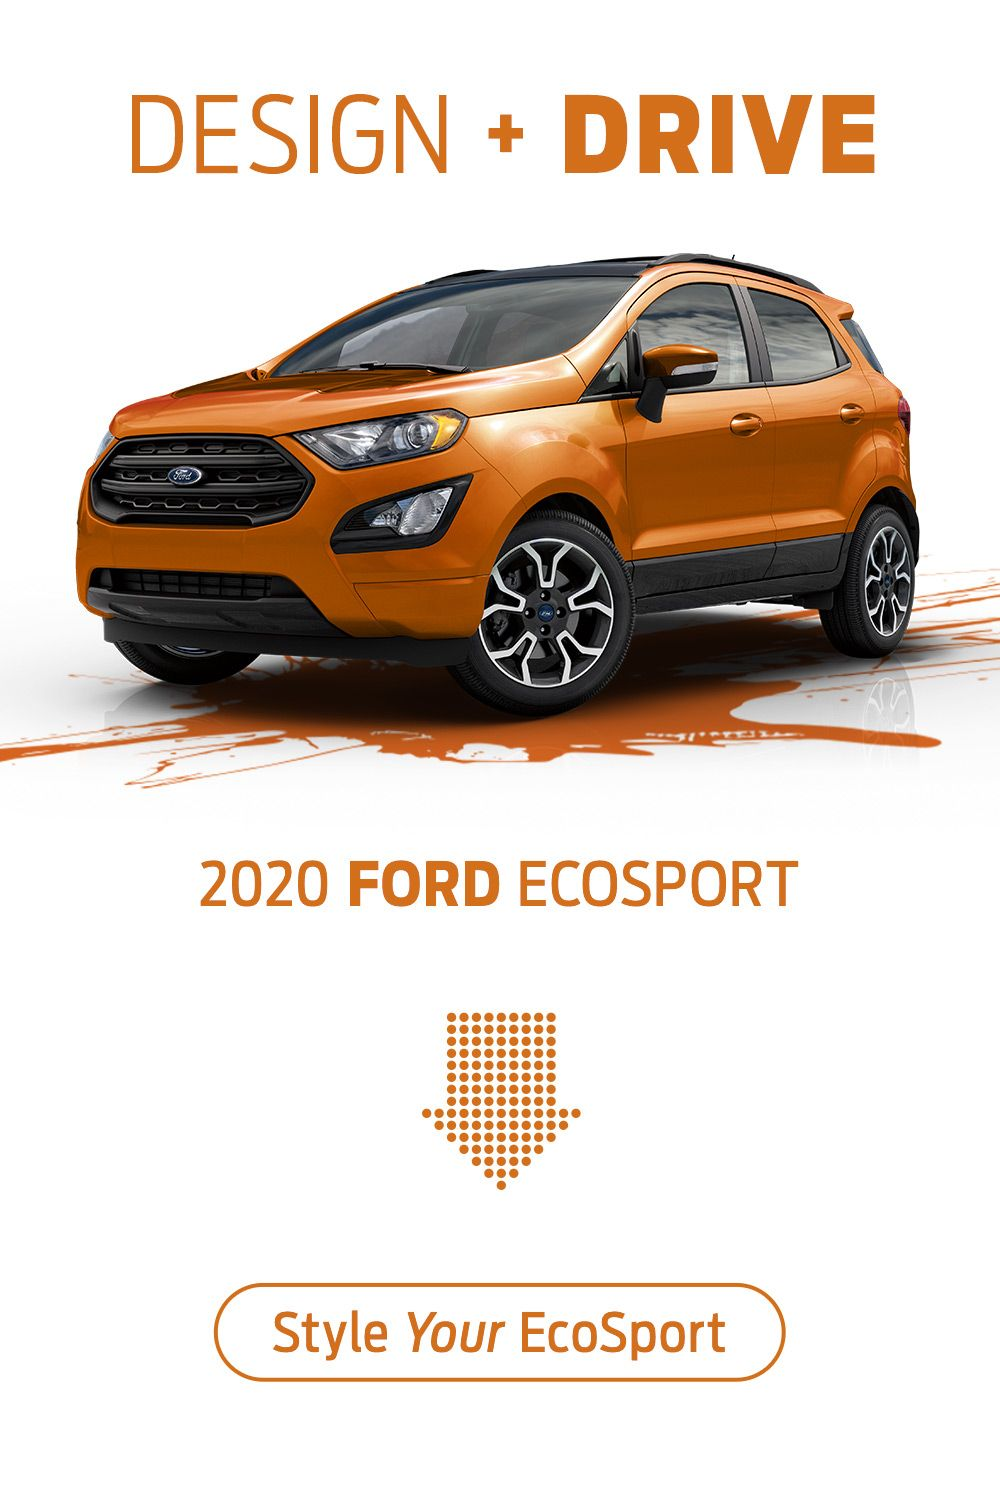 The 2020 Ford EcoSport has the features you need